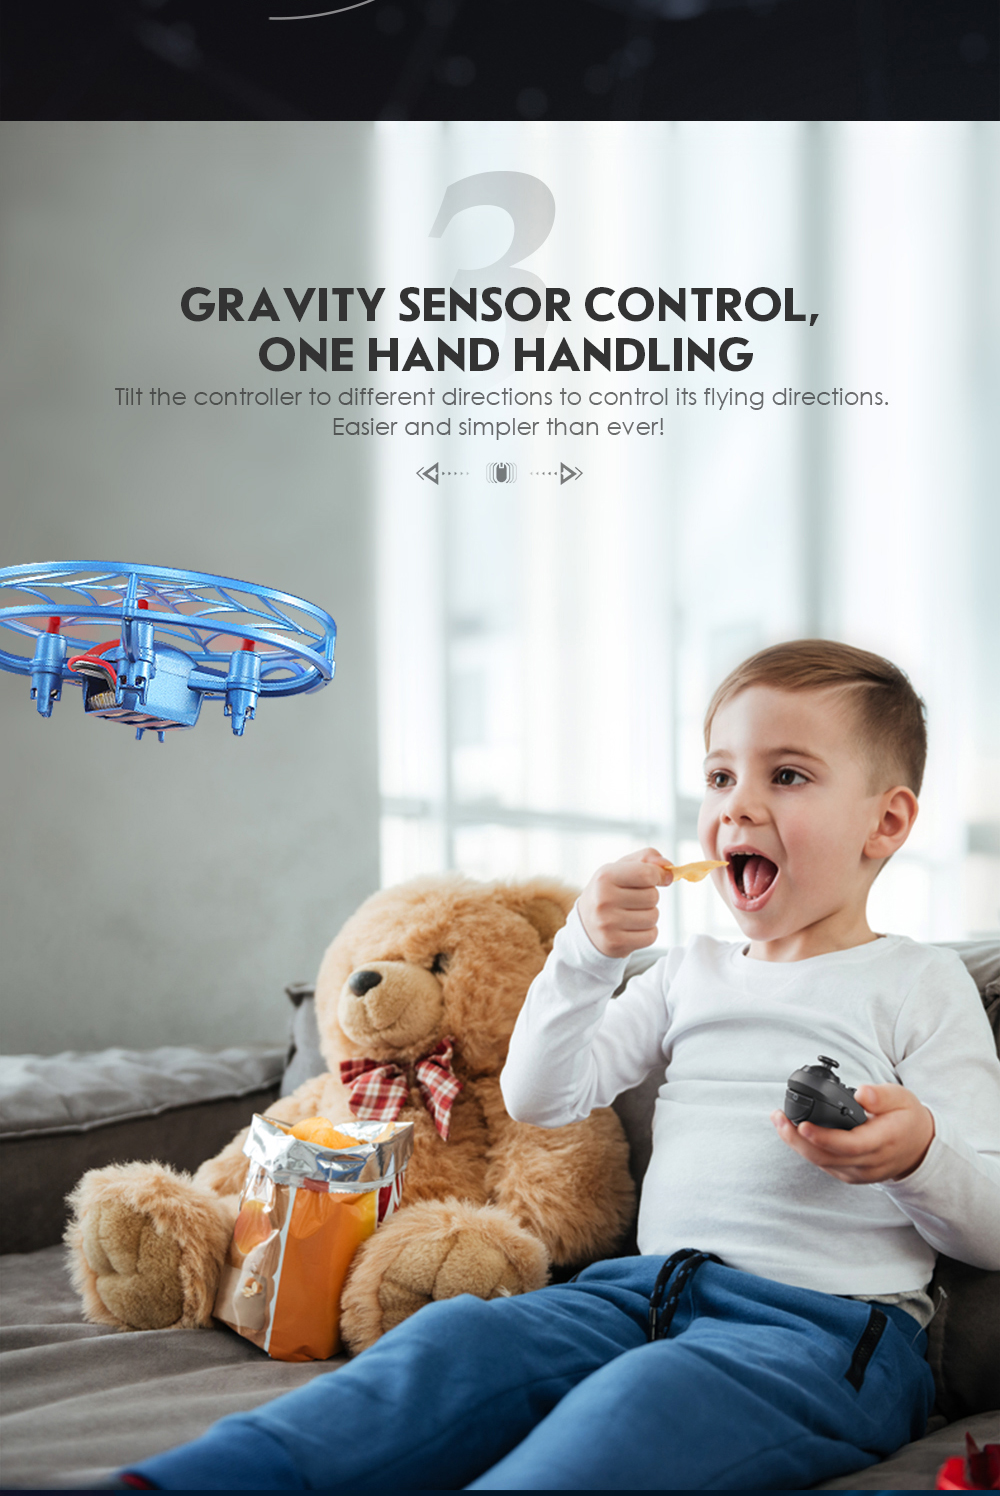 JJRC H64 Spiderman with G-Sensor Control Voice Prompt Altitude Hold Mode RC Drone Quadcopter